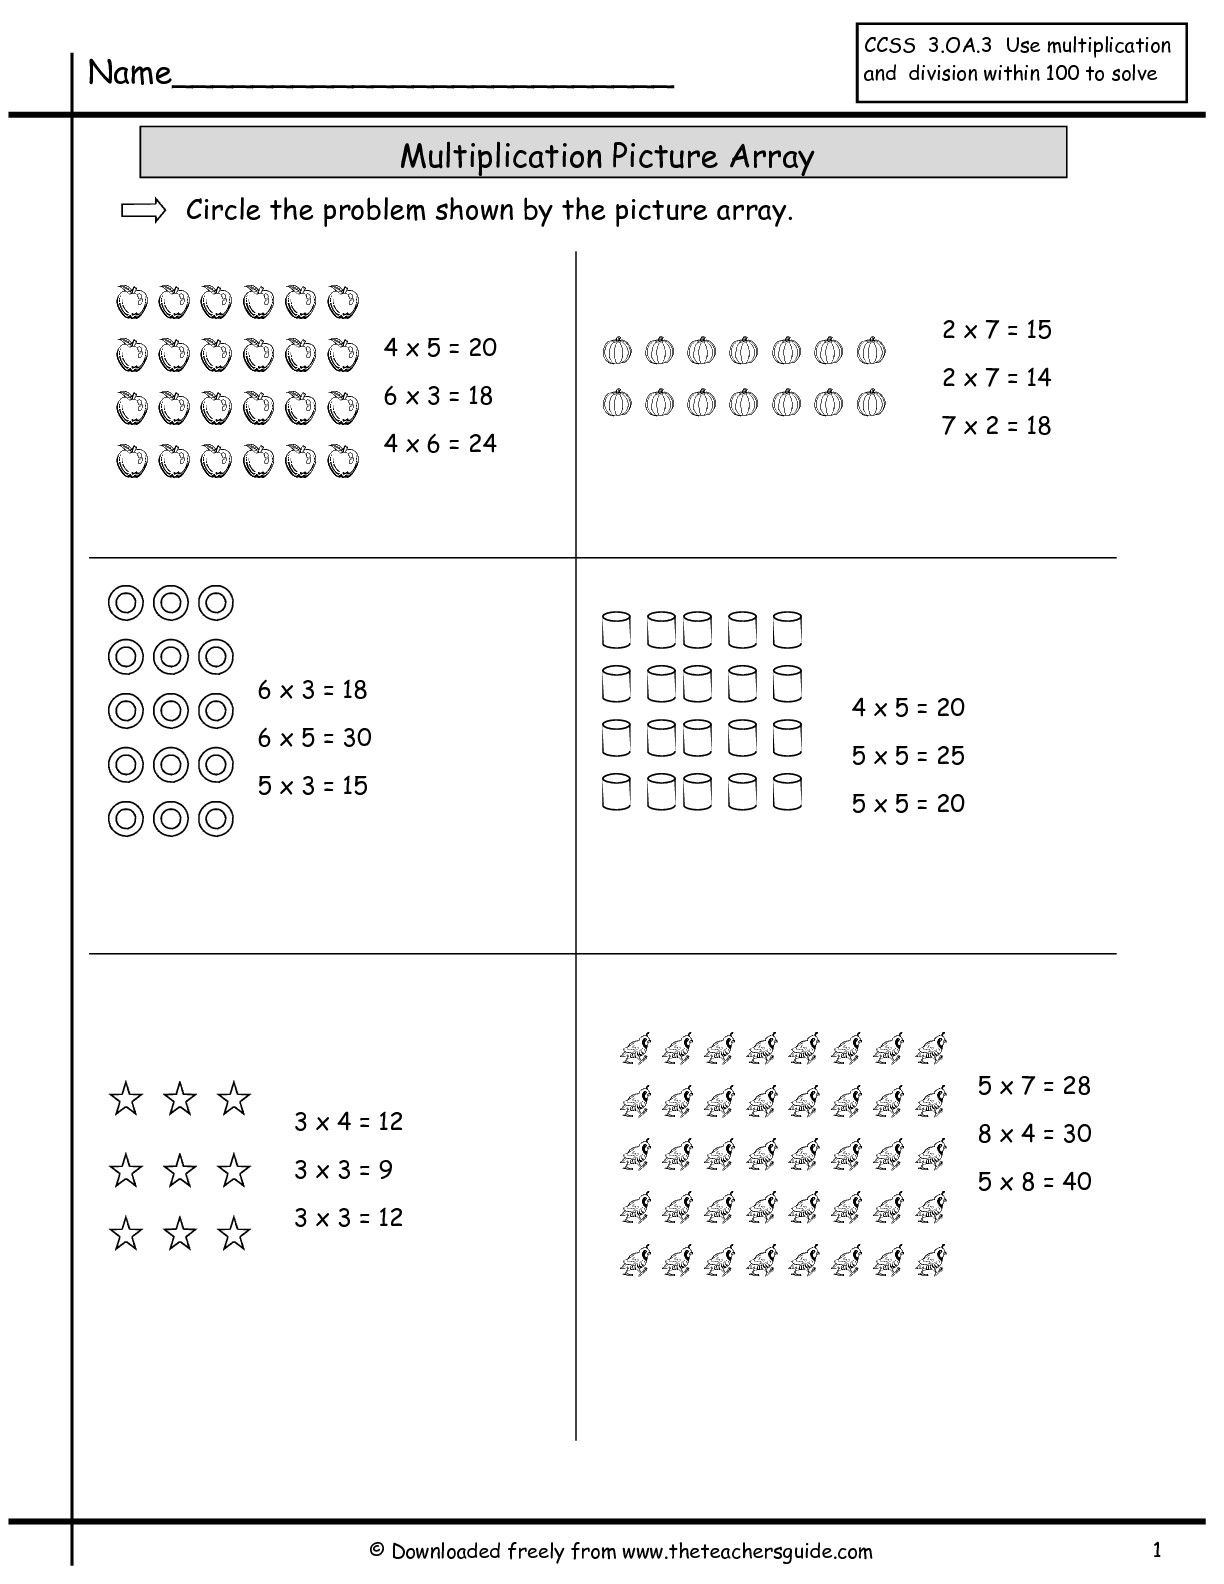 hight resolution of 16 Best Array Worksheets images on Best Worksheets Collection